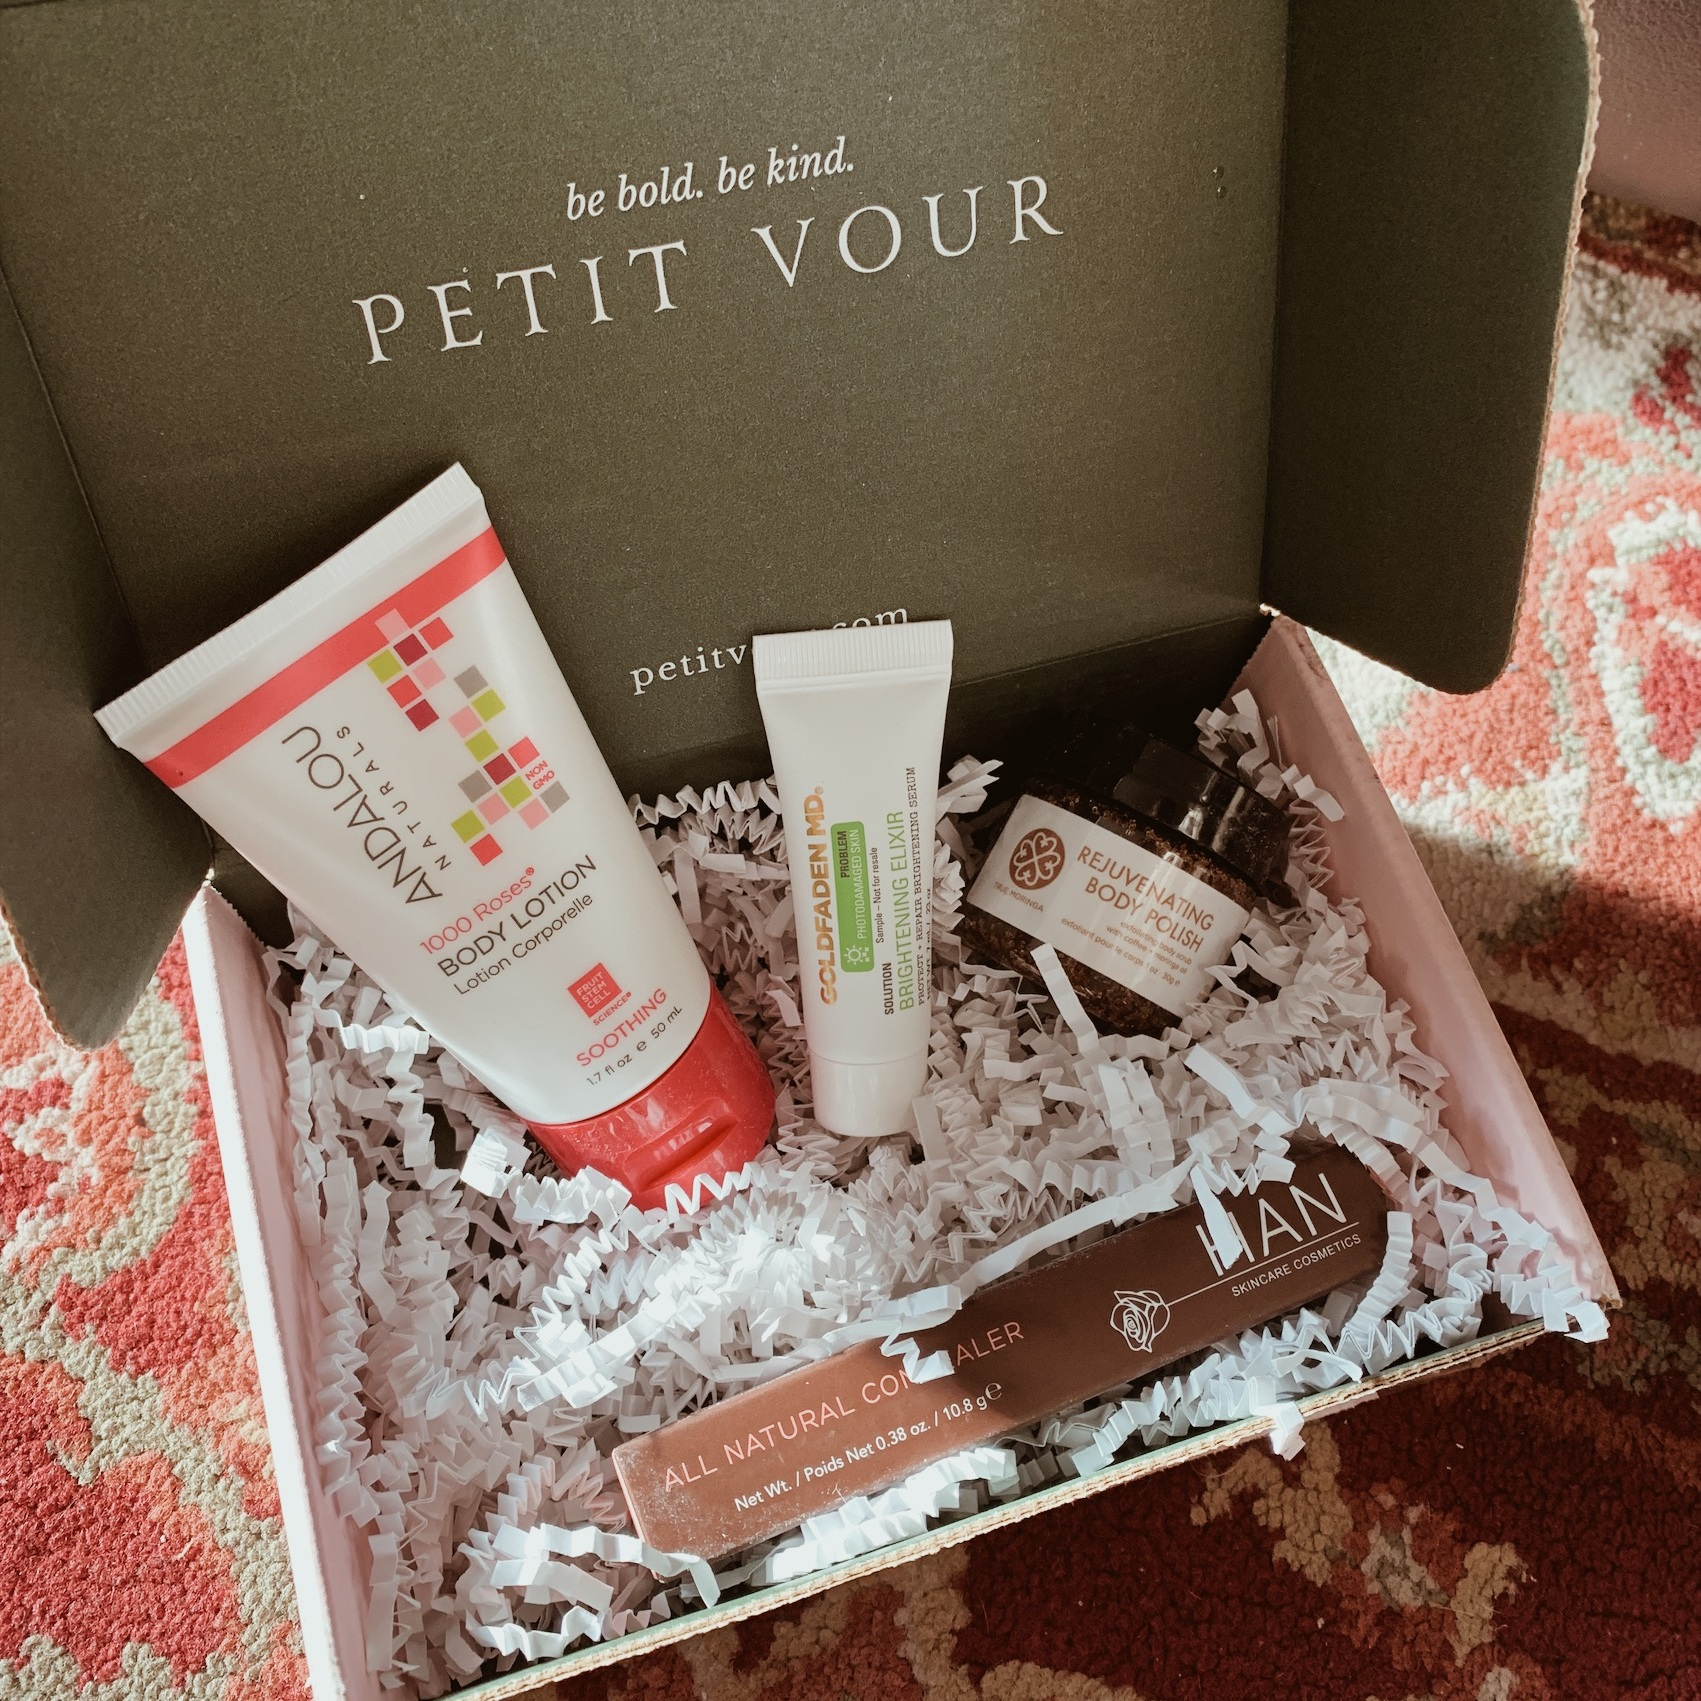 PETIT VOUR: DECEMBER BOX SUBSCRIPTION. PHOTO BY PRISCILLA WONG. IG: @lifewithpriswong